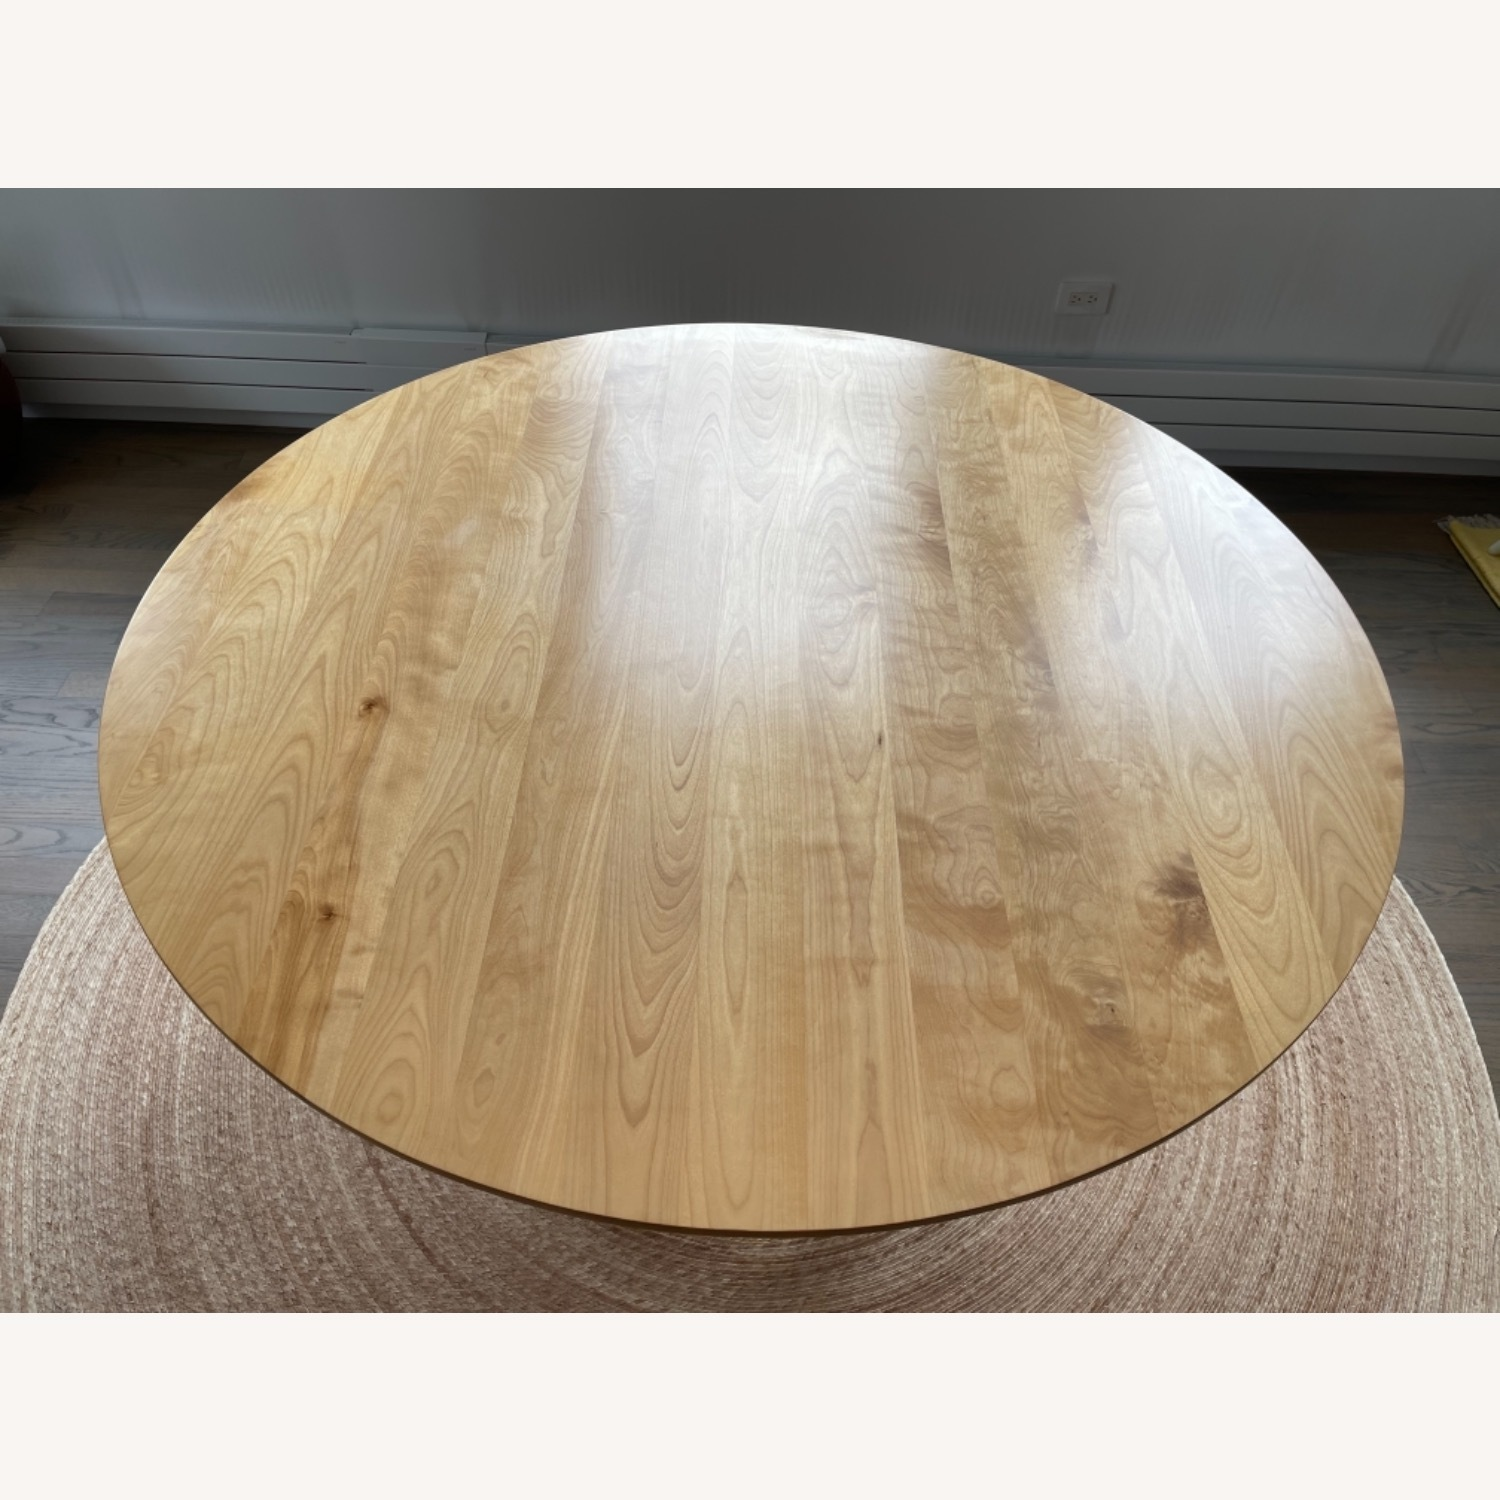 Birch Wood Round Dining Table 60 - image-8